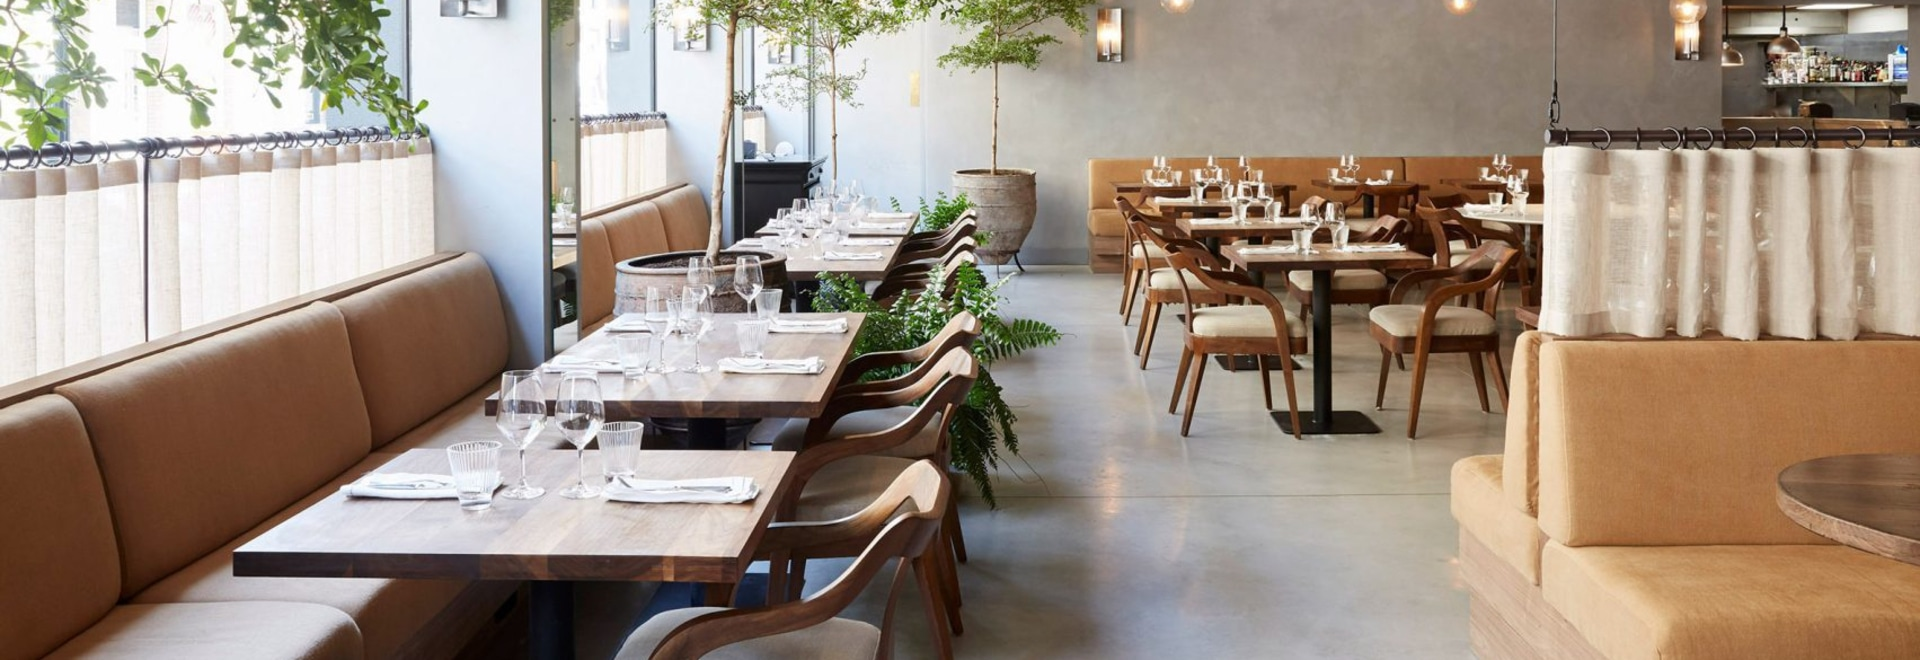 Timber furnishings and open-fire cooking warm up concrete interiors of St Leonards restaurant